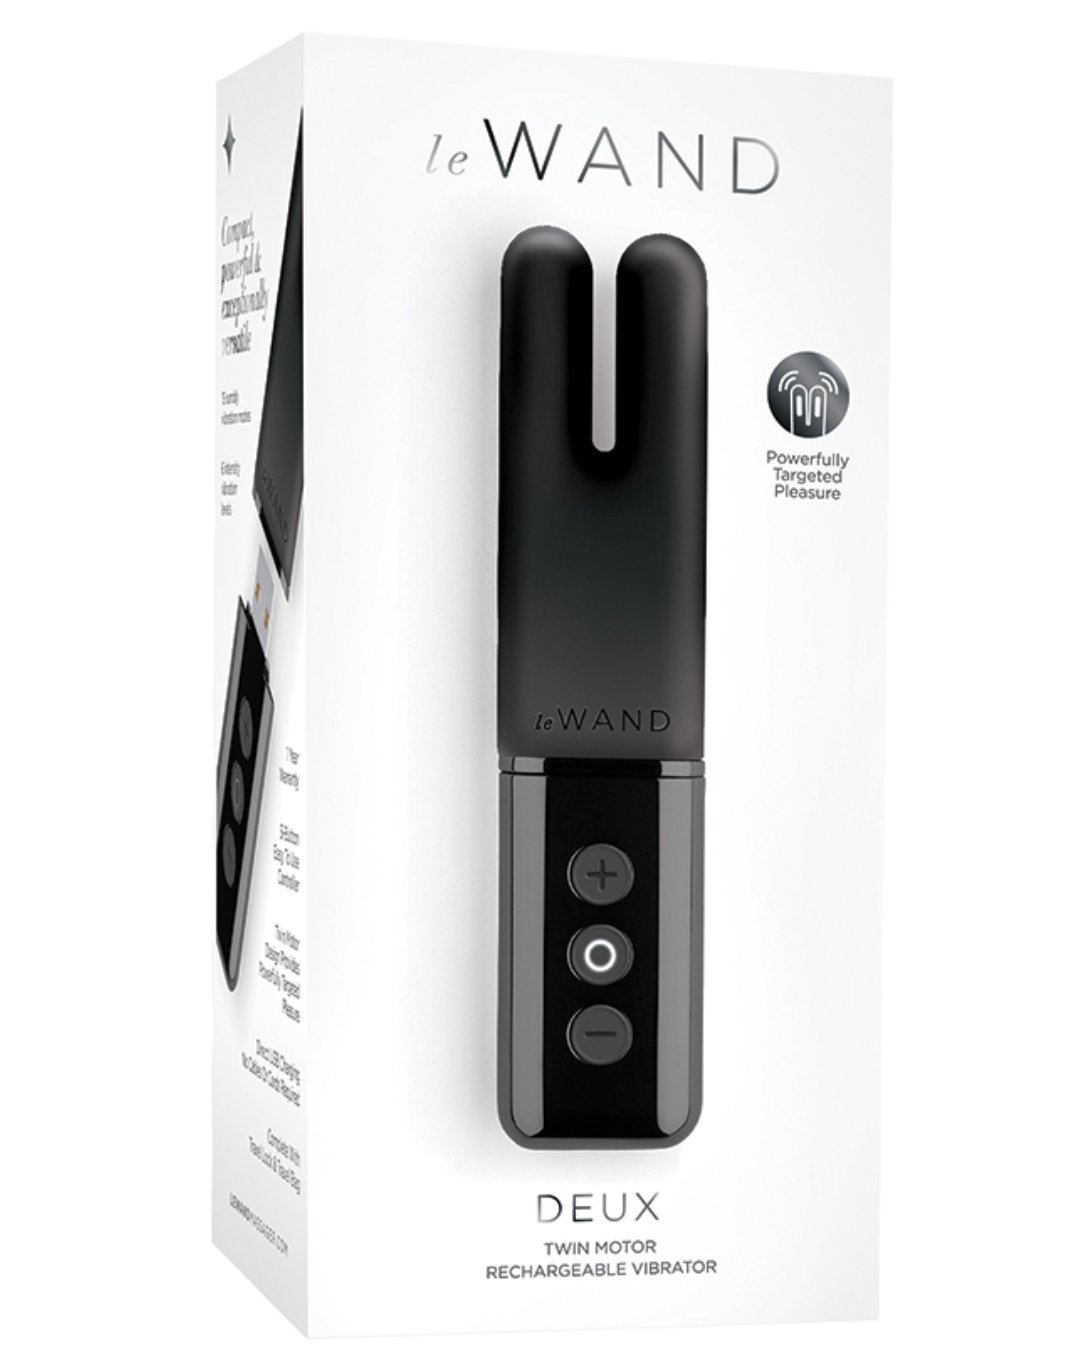 Le Wand Deux Twin Motor Rechargeable Waterproof Vibrator - Black box